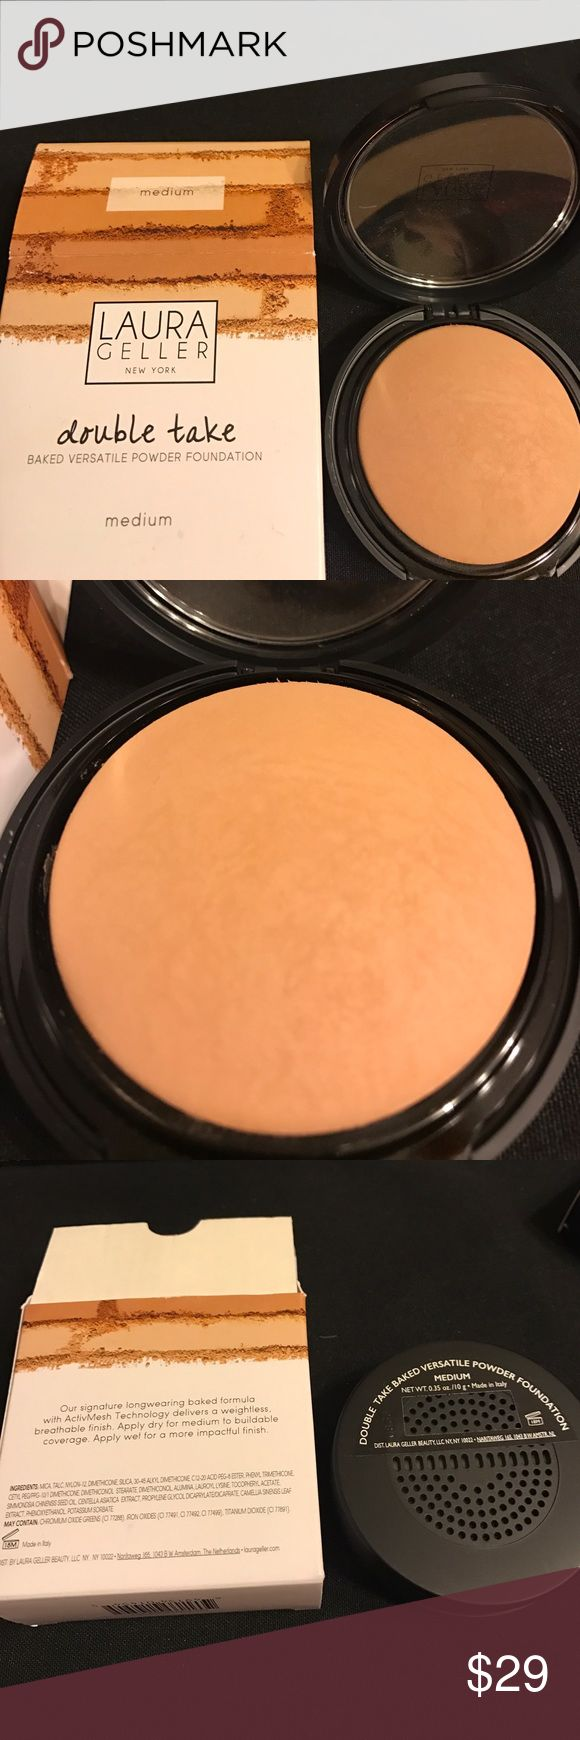 Laura Geller Foundation Medium Baked Powder Great! Laura Geller Double Take Powder Foundation Medium New. I love this foundation it covers and lasts so great. You can wear with alone or as Setting powder for a little more flawless skin over your foundation. Sephora Makeup Foundation